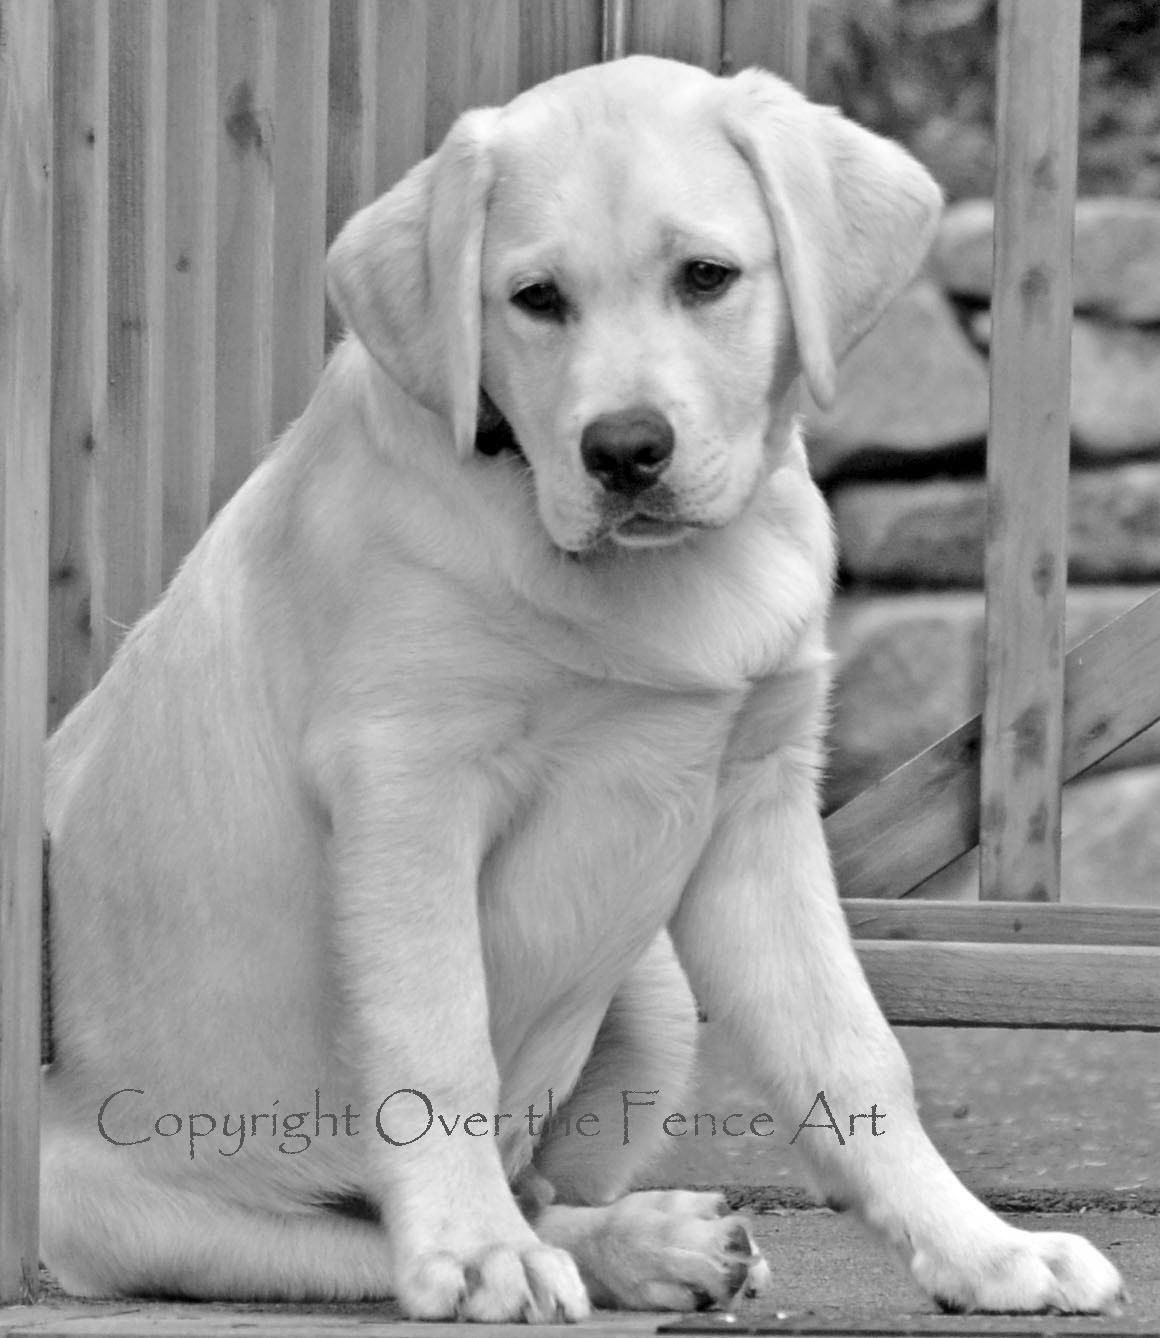 Black And White Photograph Yellow Labrador Puppy In A Quiet Moment Lab Greeting Card Dog Portrait Art Card Yellow Labrador Puppy Labrador Puppy Labrador Retriever